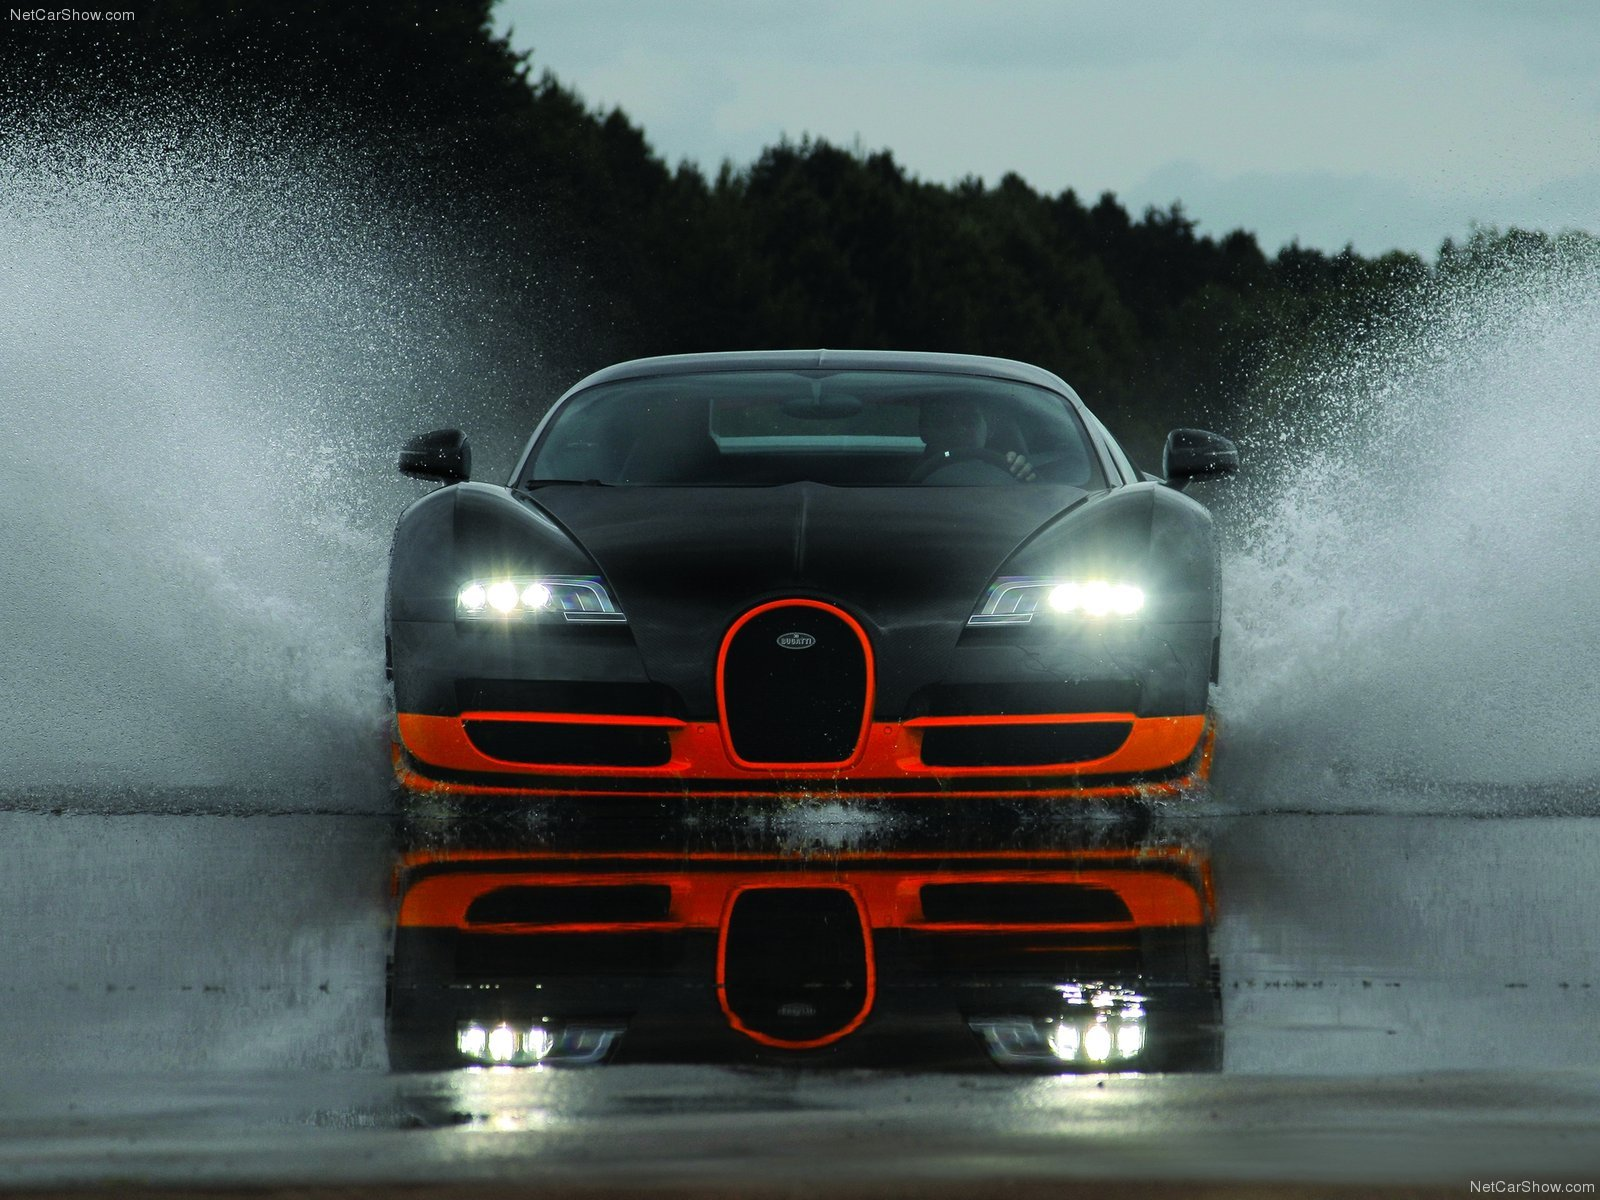 Free Download Sports Cars Wallpapers Bugatti Veyron Wallpapers 1600x1200 For Your Desktop Mobile Tablet Explore 76 Bugatti Backgrounds Bugatti Veyron Wallpaper Bugatti Veyron Wallpaper For Desktop Bugatti Pics Wallpaper